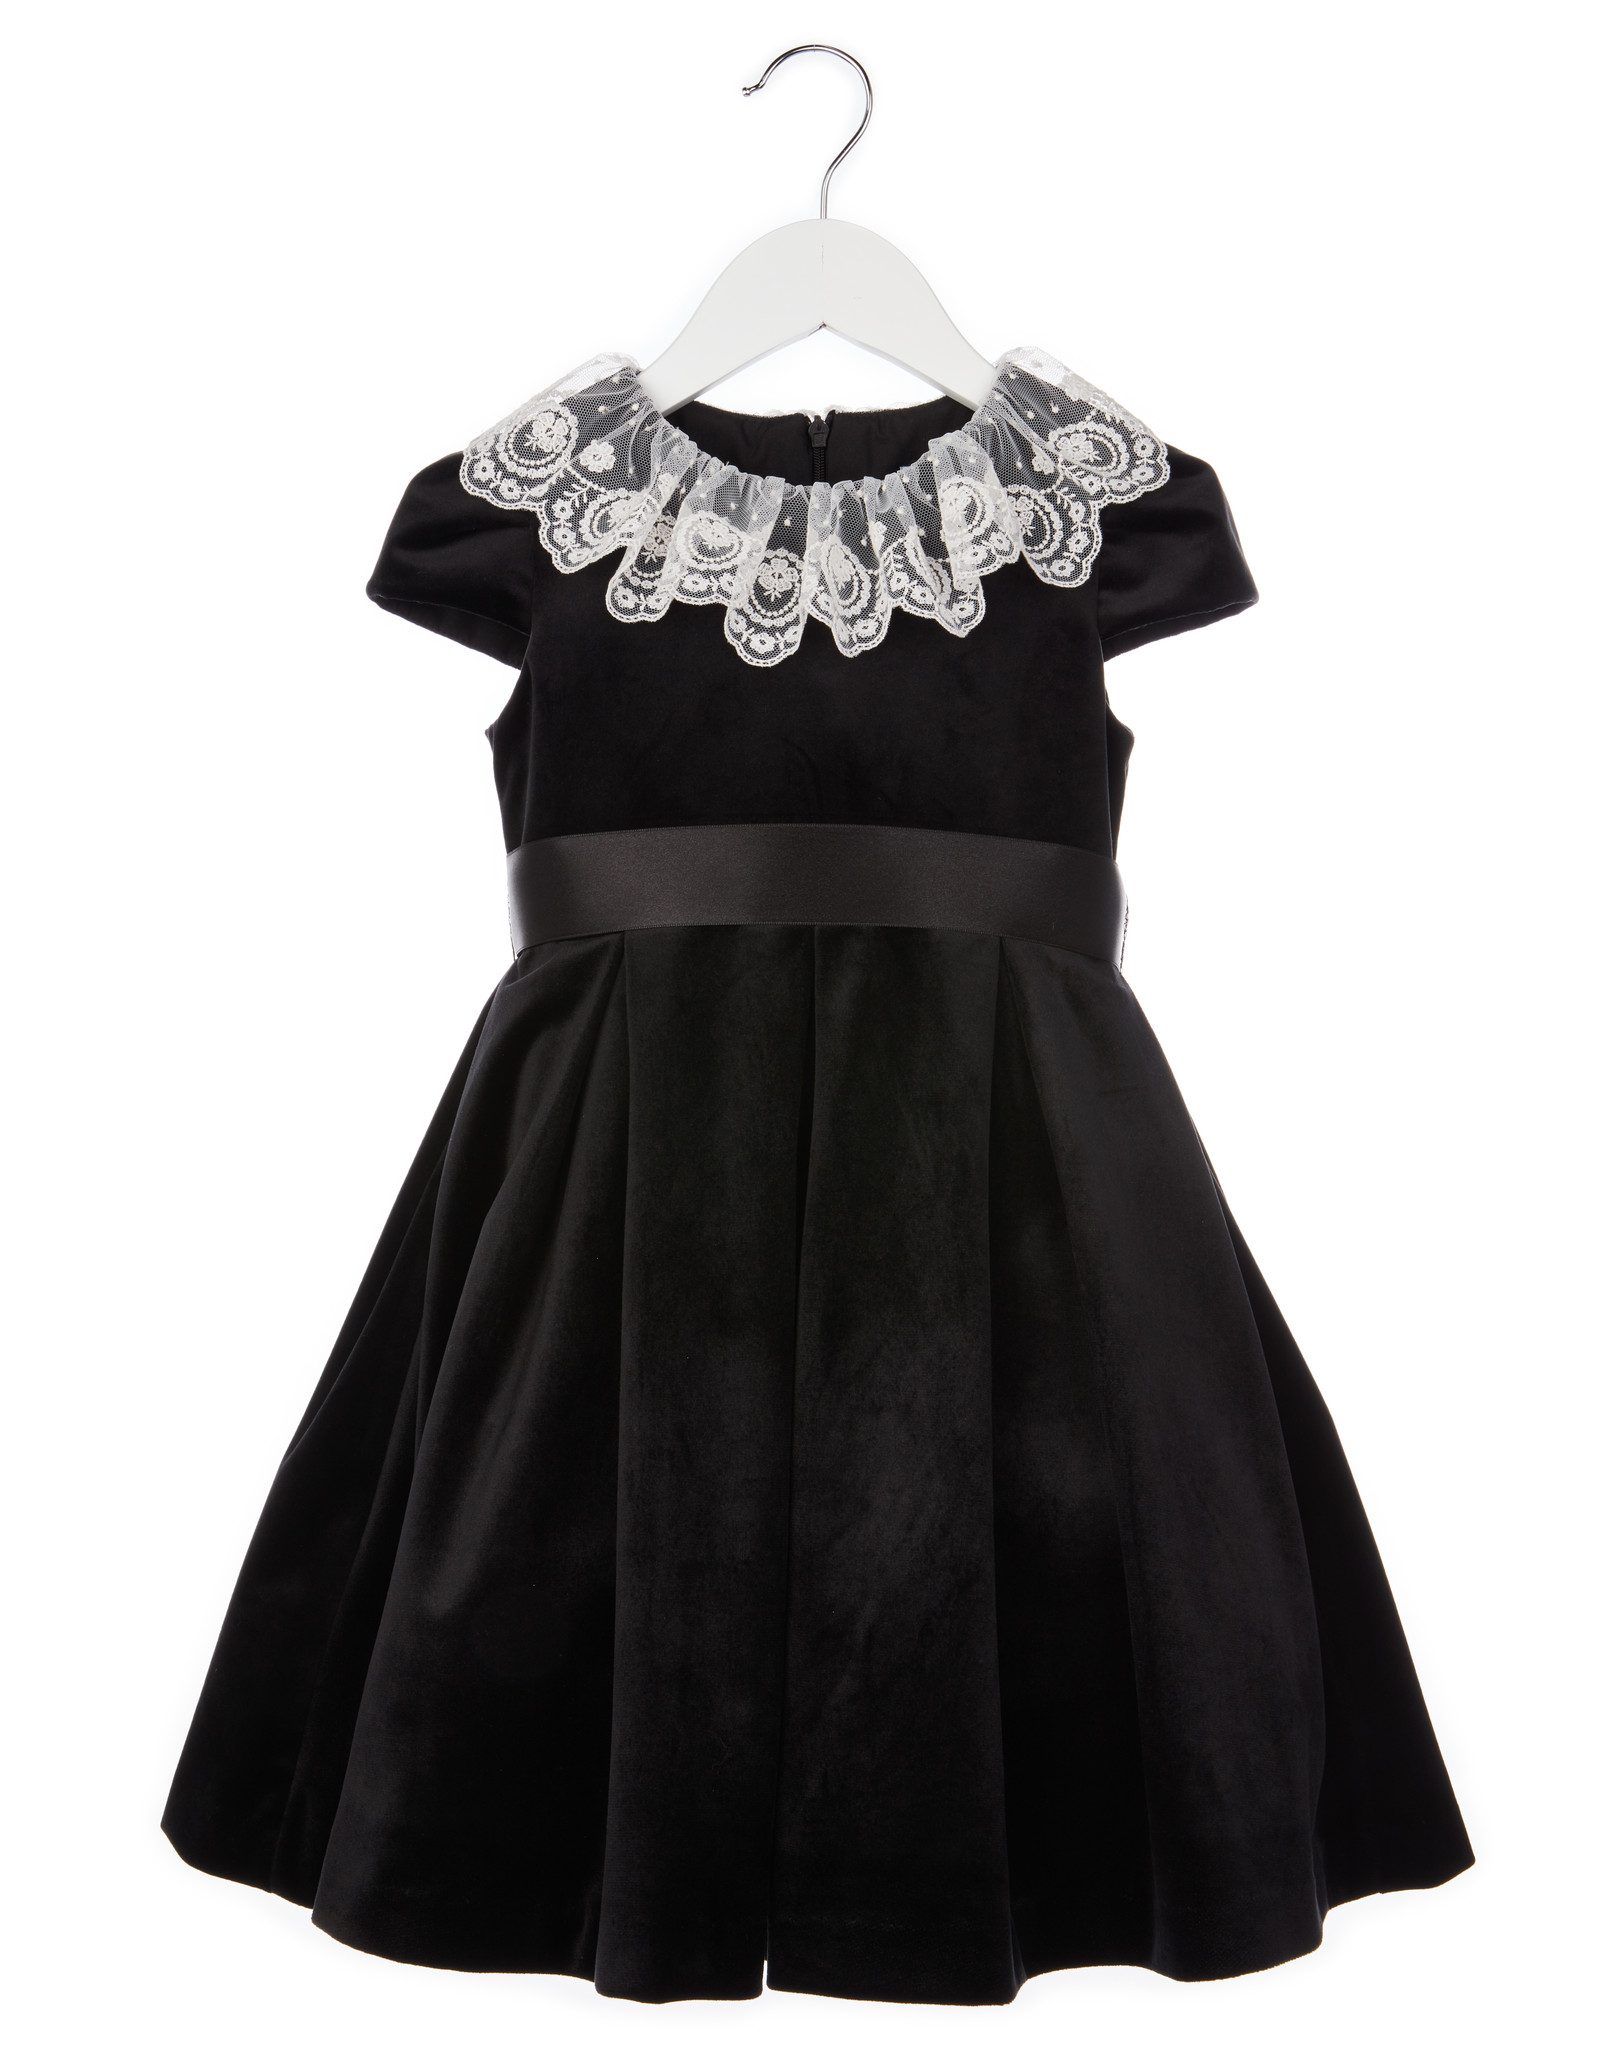 Luli Black Velvet Dress with White Lace Collar